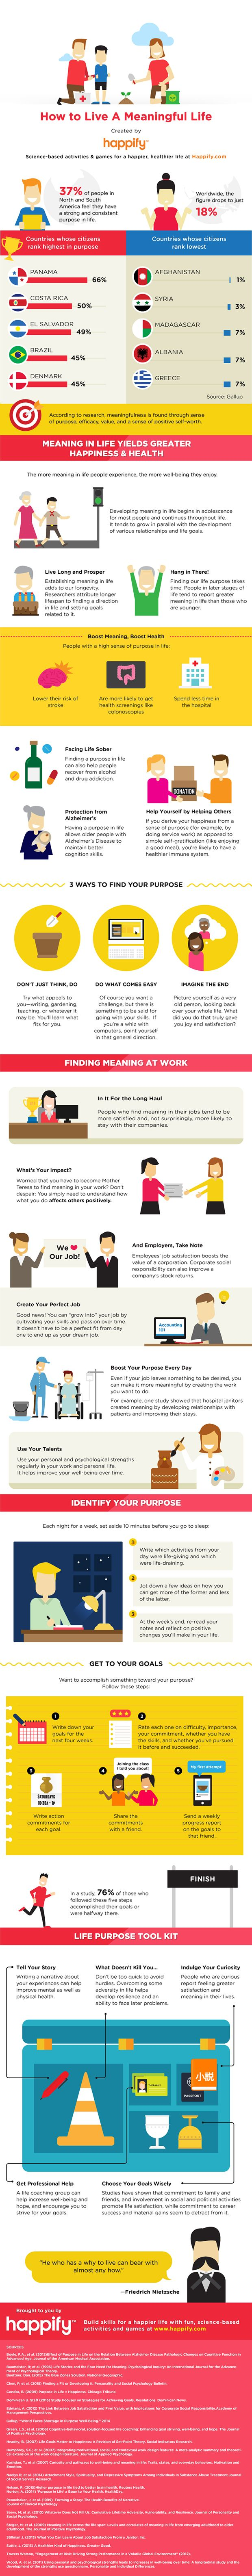 Infographic: Find your meaning and purpose in life via @happify